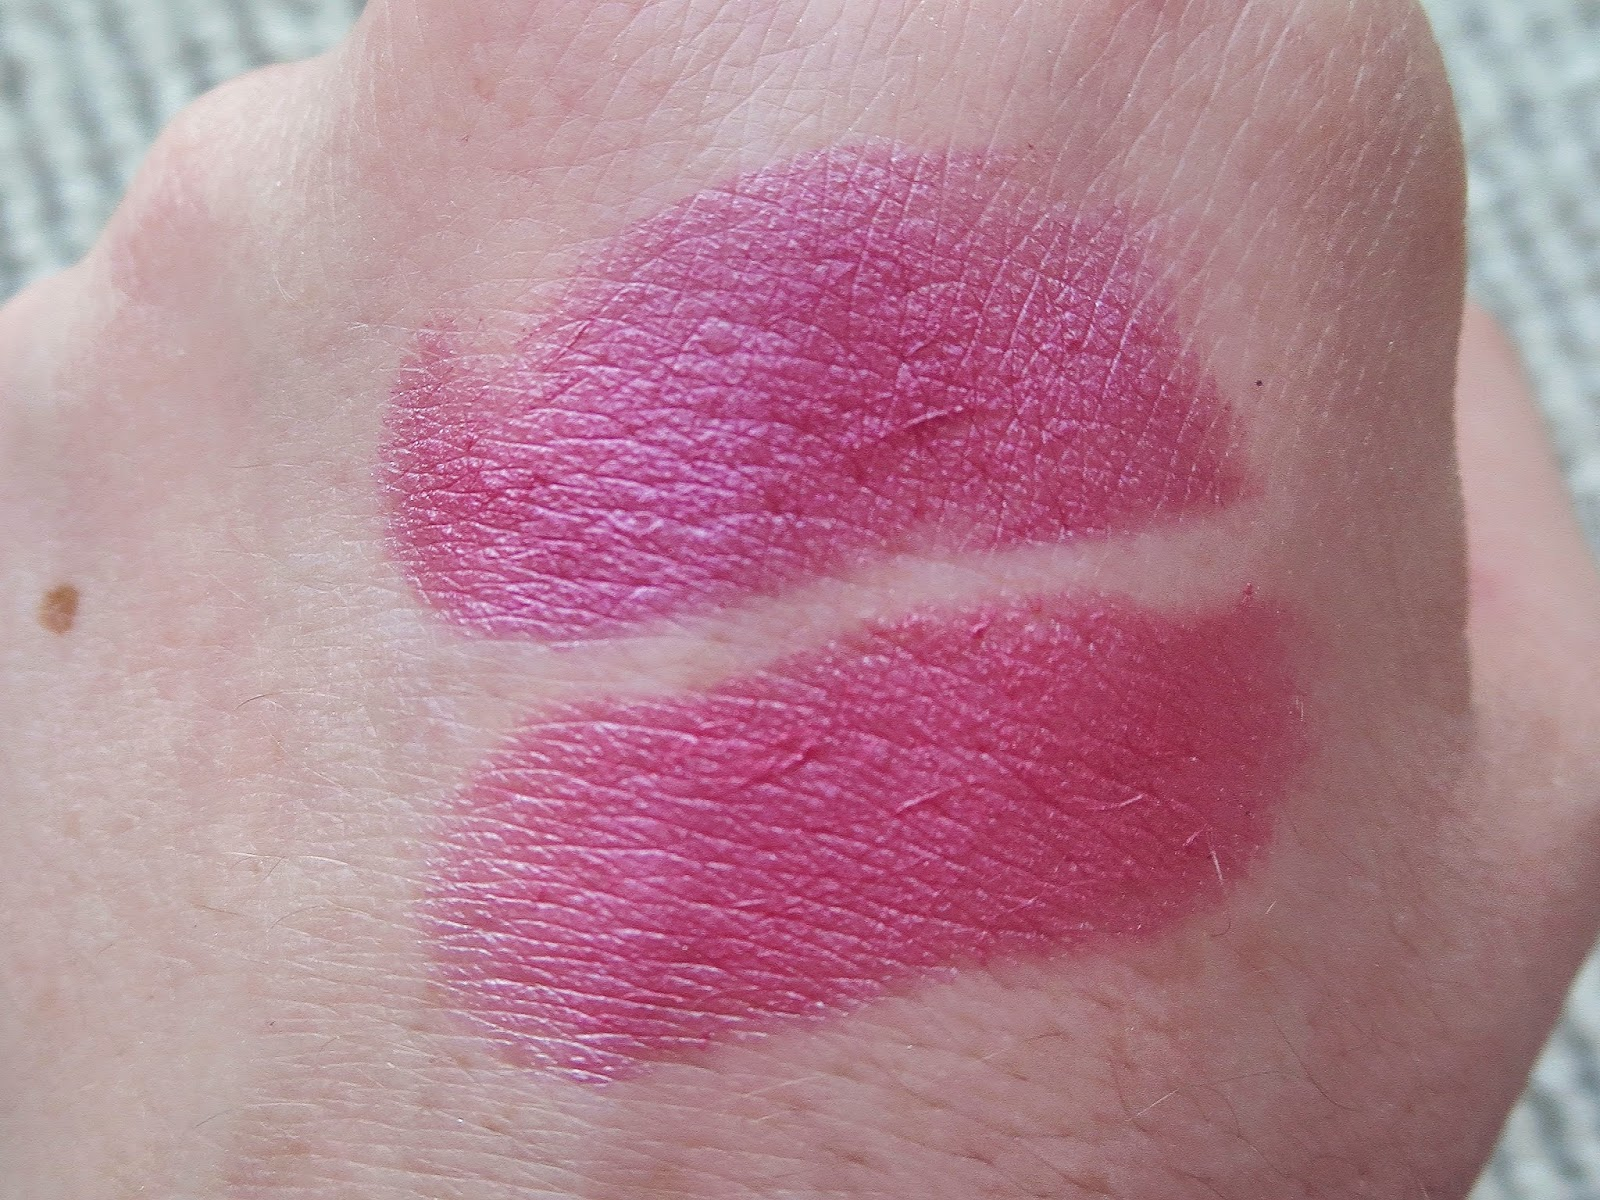 a picture swatch of Covergirl Colorlicious Lipsticks in Coquette Orchid and Ravishing Rose